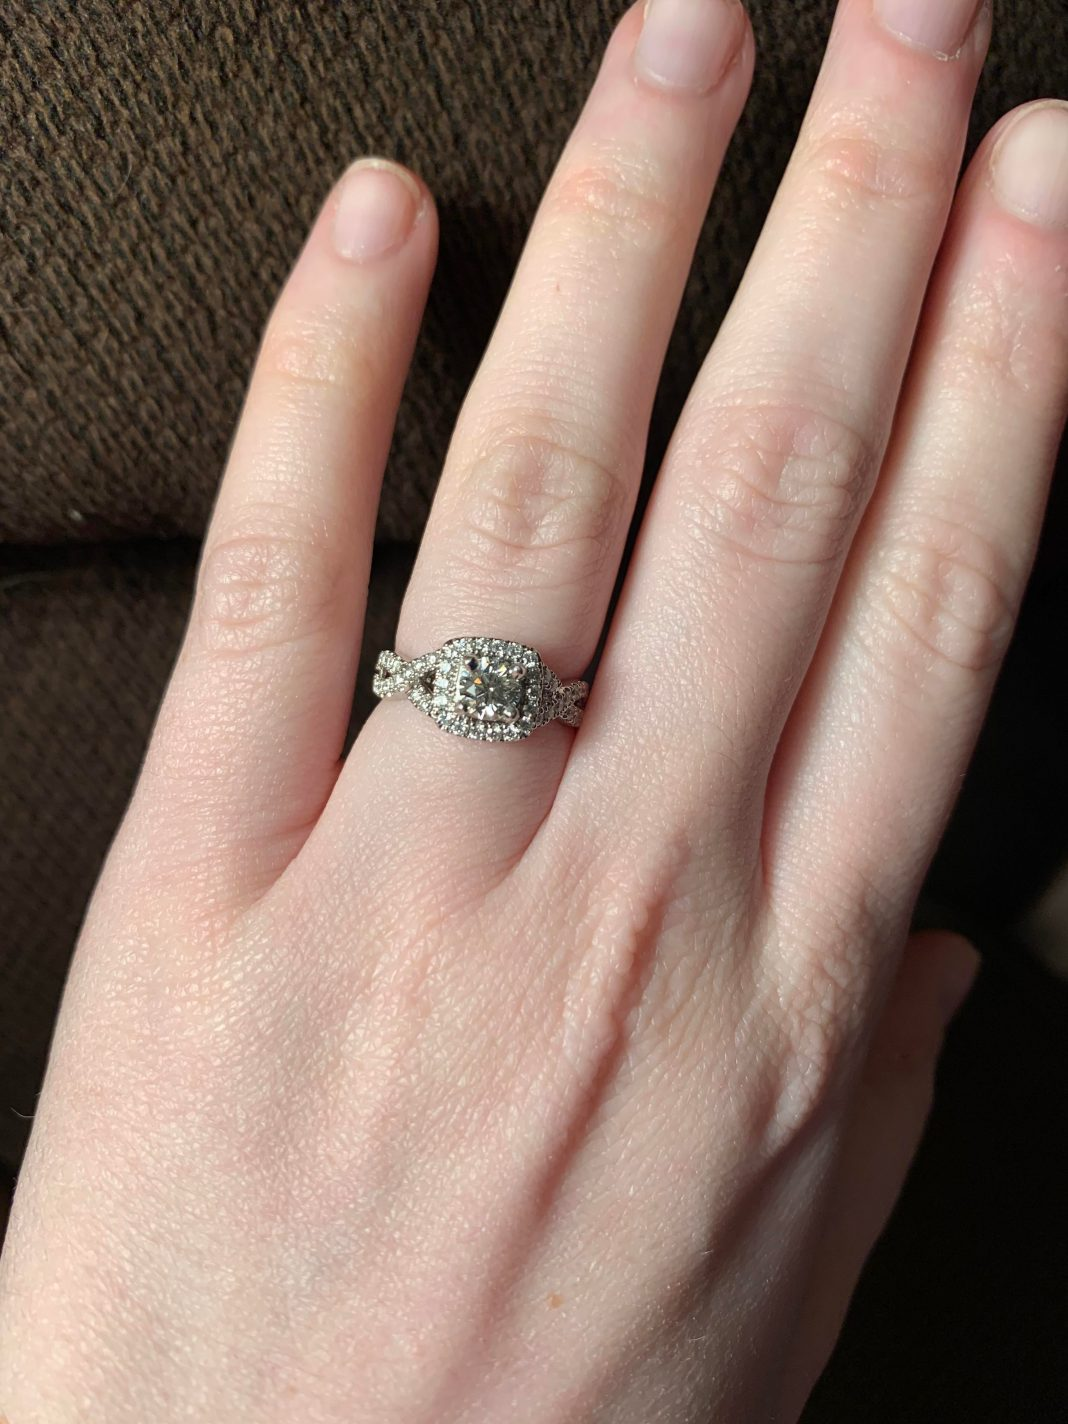 My New Years Day Ring❤️ So excited and shocked!